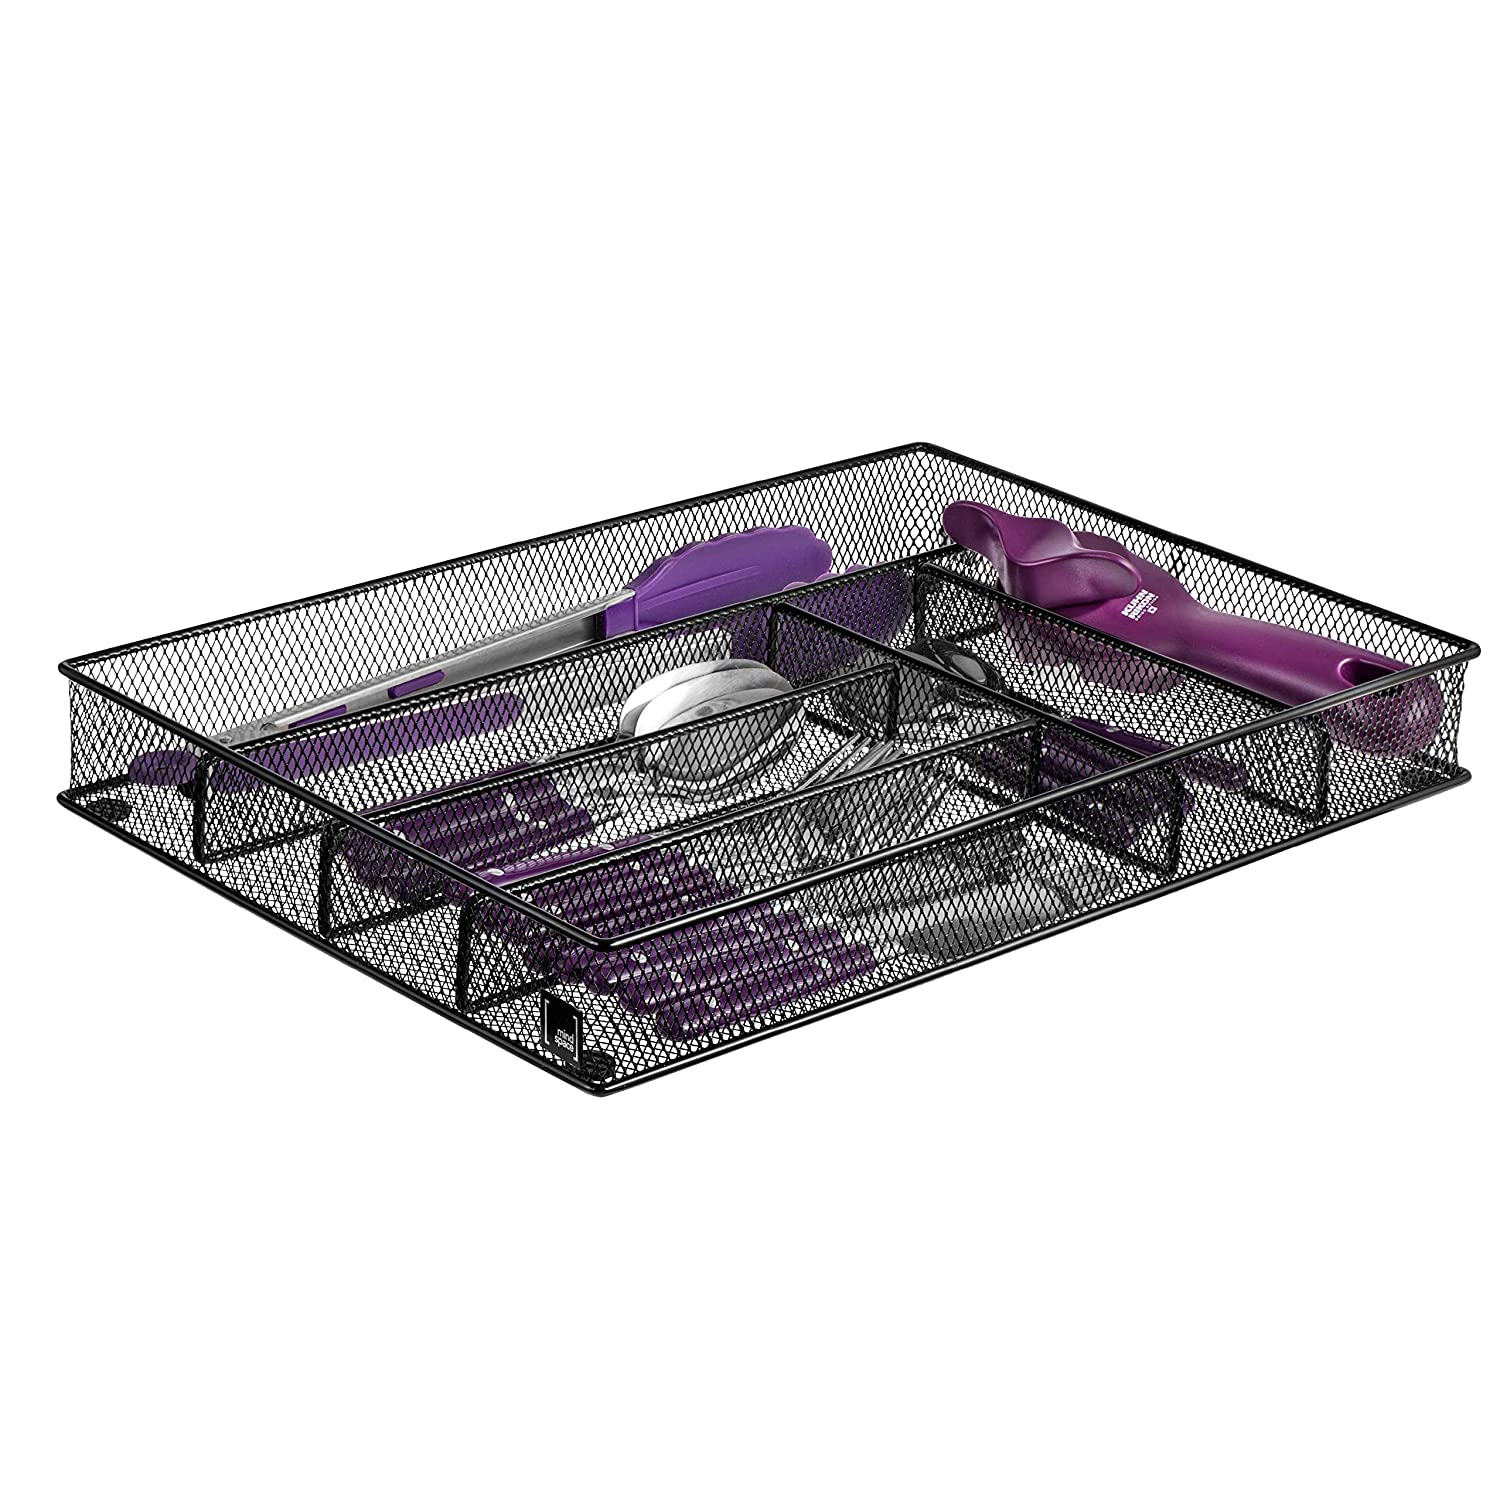 Cutlery Tray by Mindspace, 6 Compartments | Kitchen Utensil Silverware Tray | Flatware Drawer Organizer | The Mesh Collection, Black